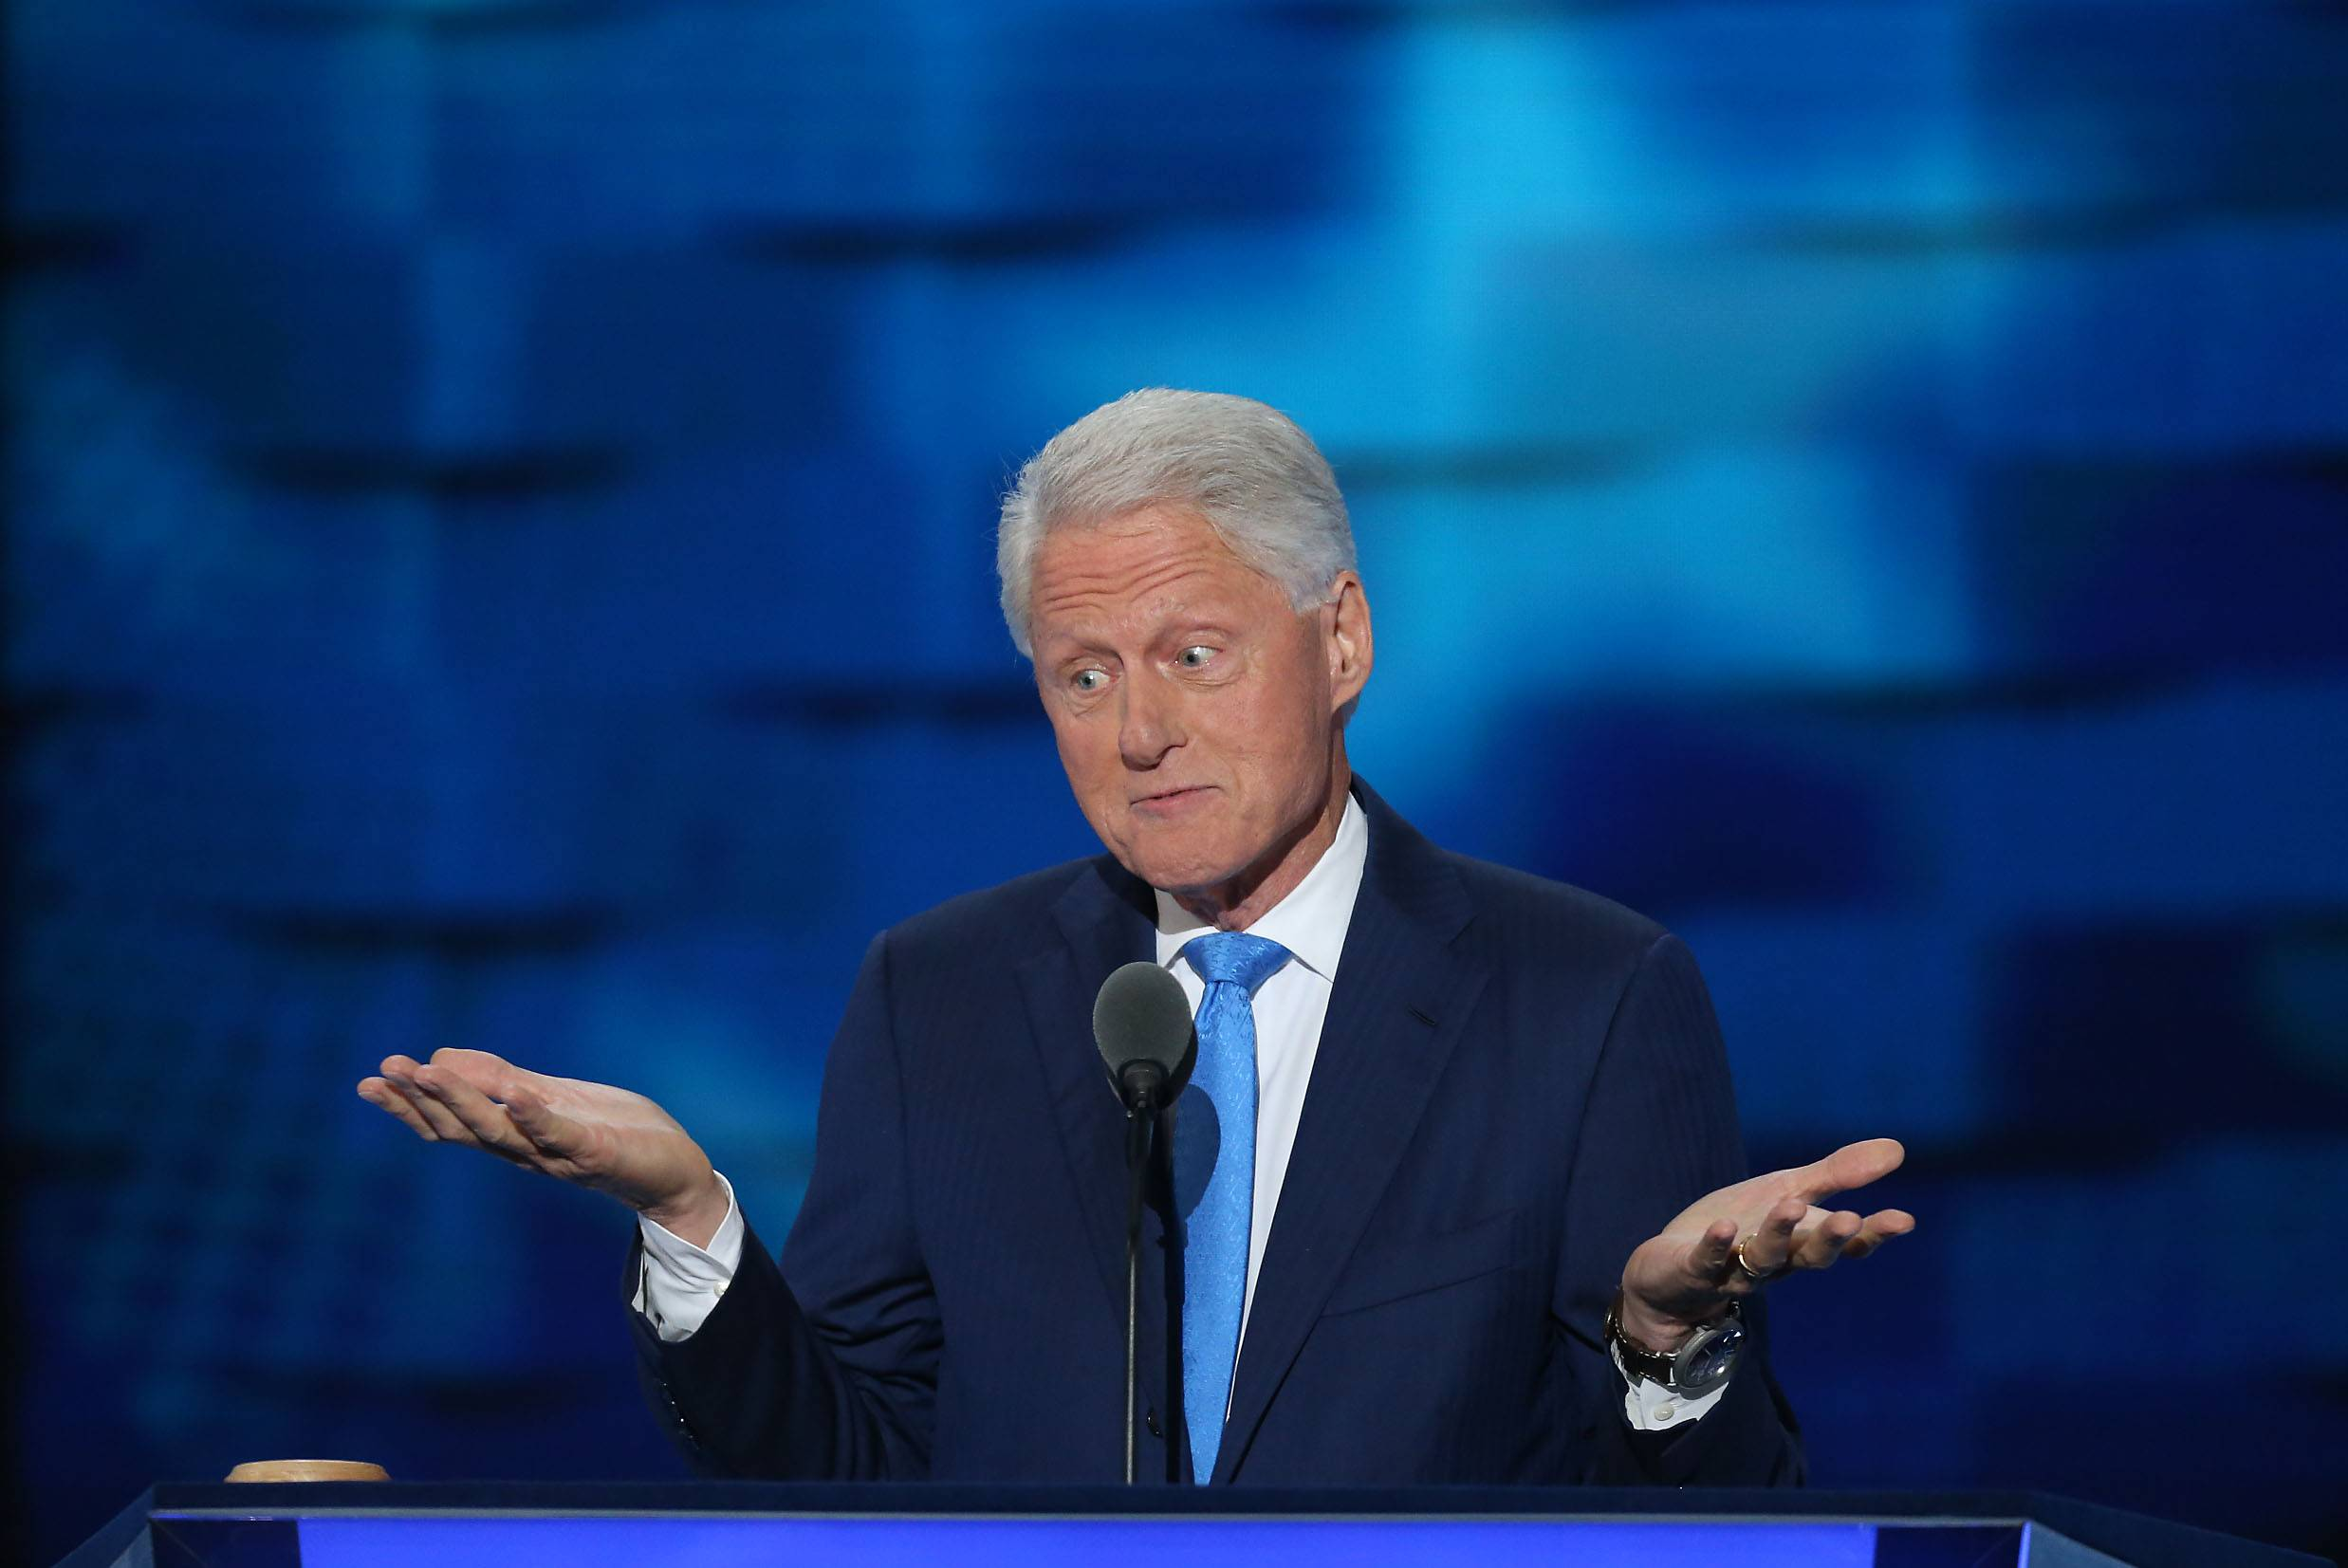 Here's what Bill Clinton said about Park Ridge Tuesday